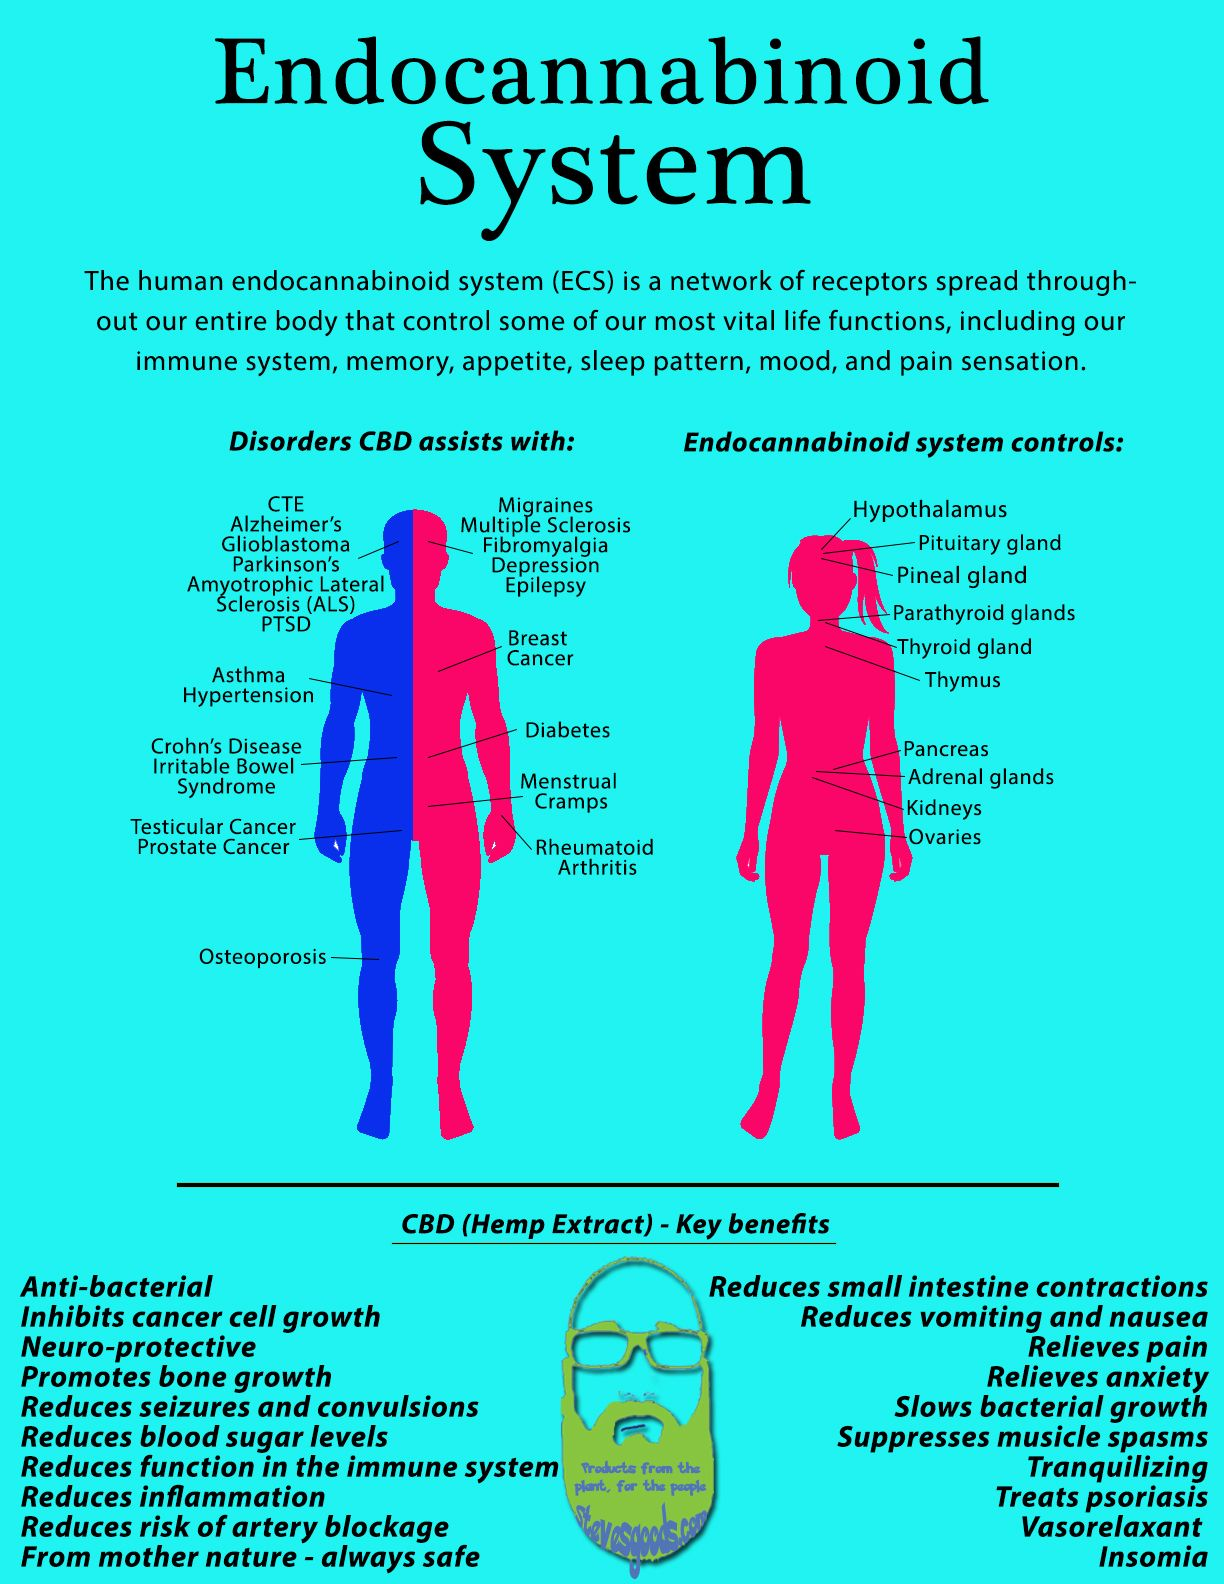 advantages of cause and effect diagram 2008 toyota hilux workmate wiring image result for endocannabinoid system images cbd